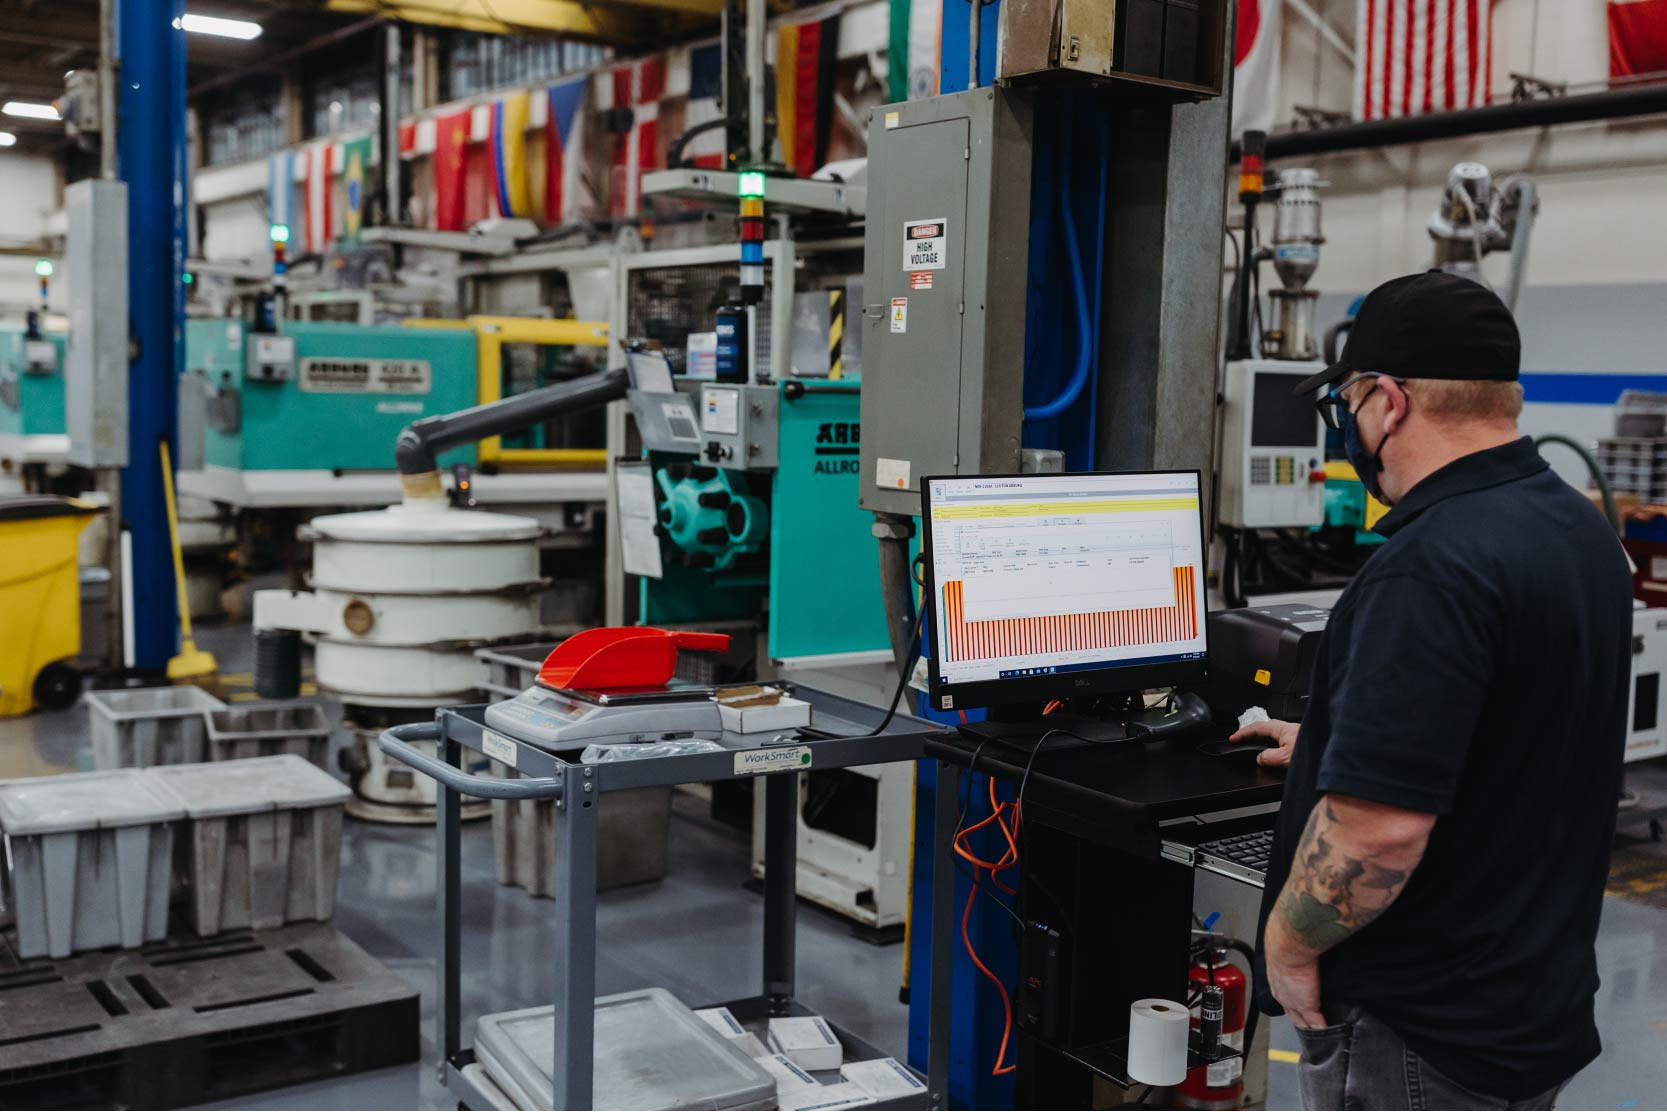 A man watches a screen that monitors the status of all Arburg injection molding machines